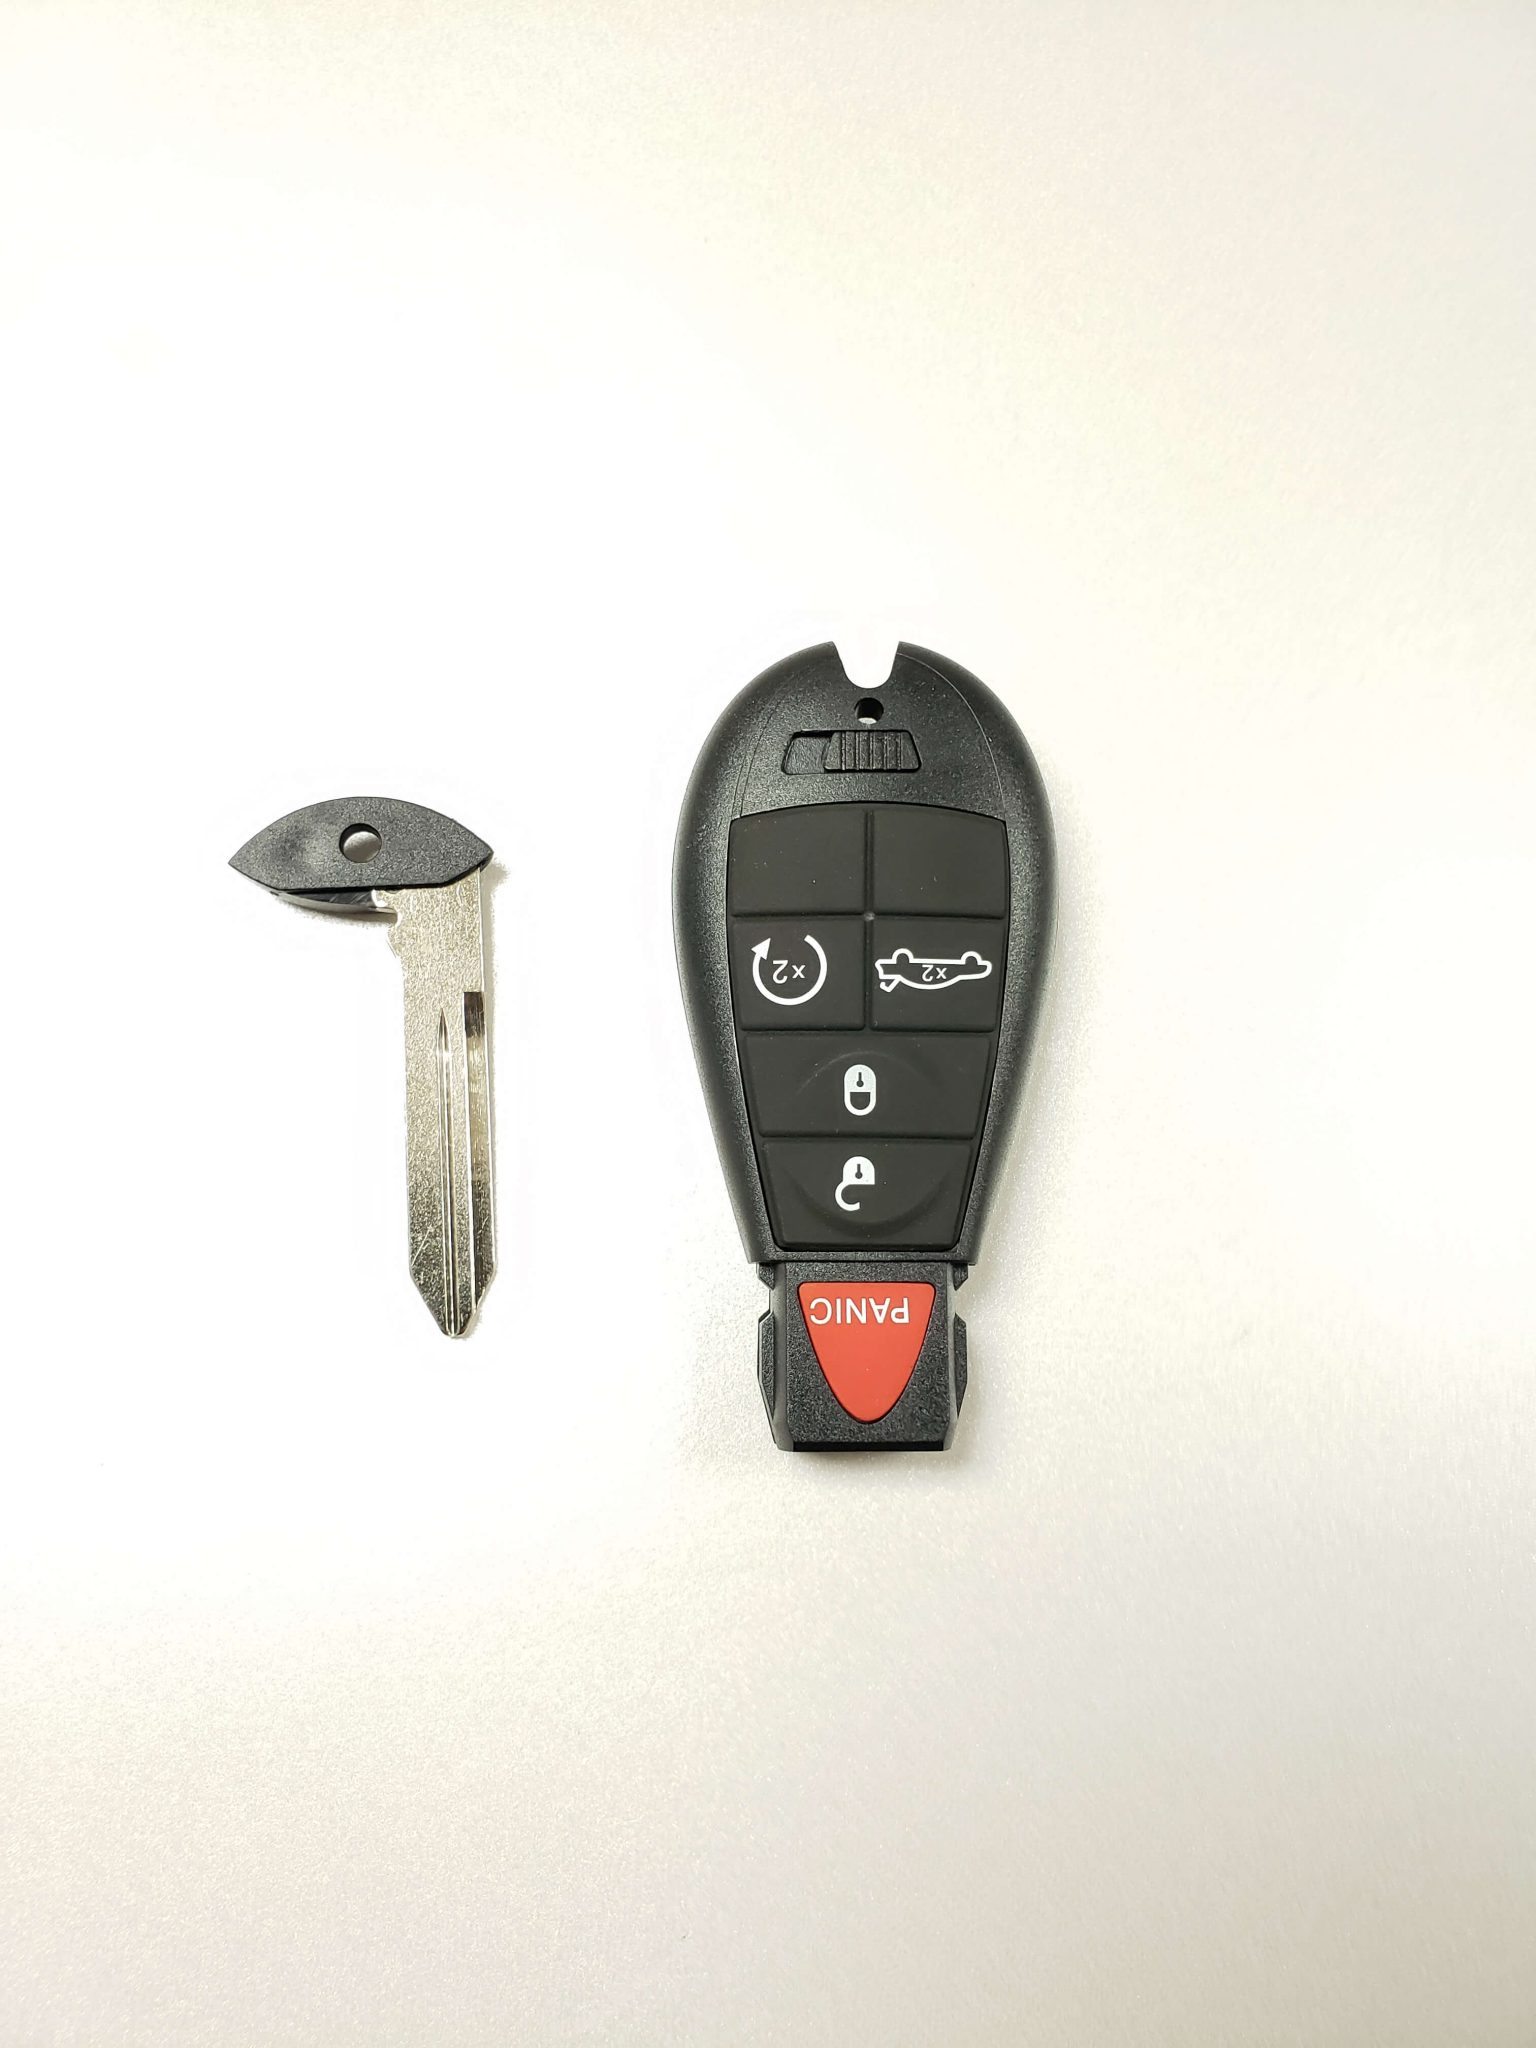 New Chrysler Dodge Jeep Replacement Uncut Transponder Chip Ignition Key Blade x2